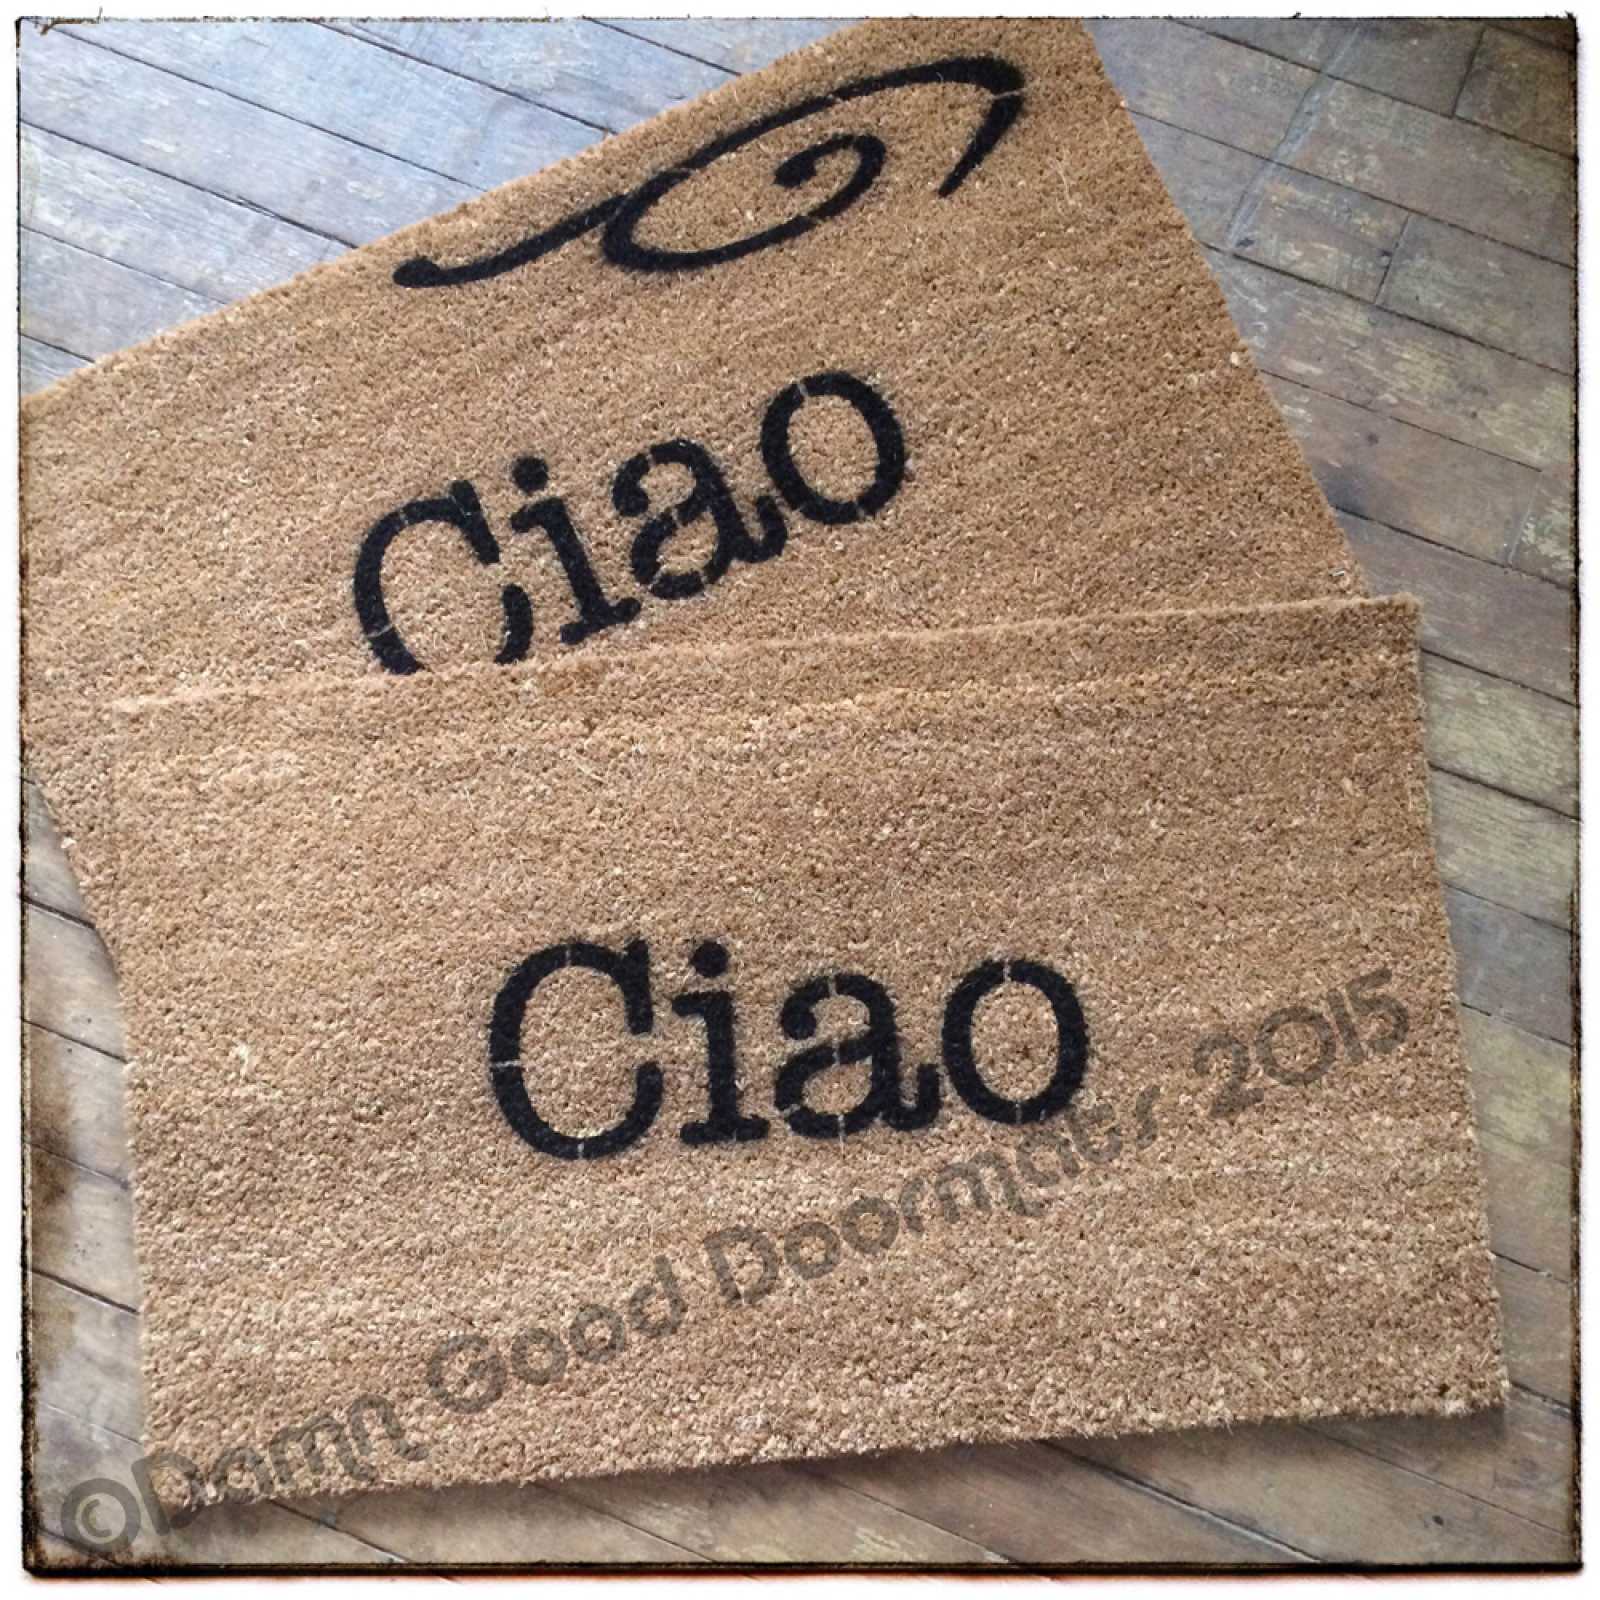 Well known Italians rejoice! Ciao doormat | Damn Good Doormats YW05